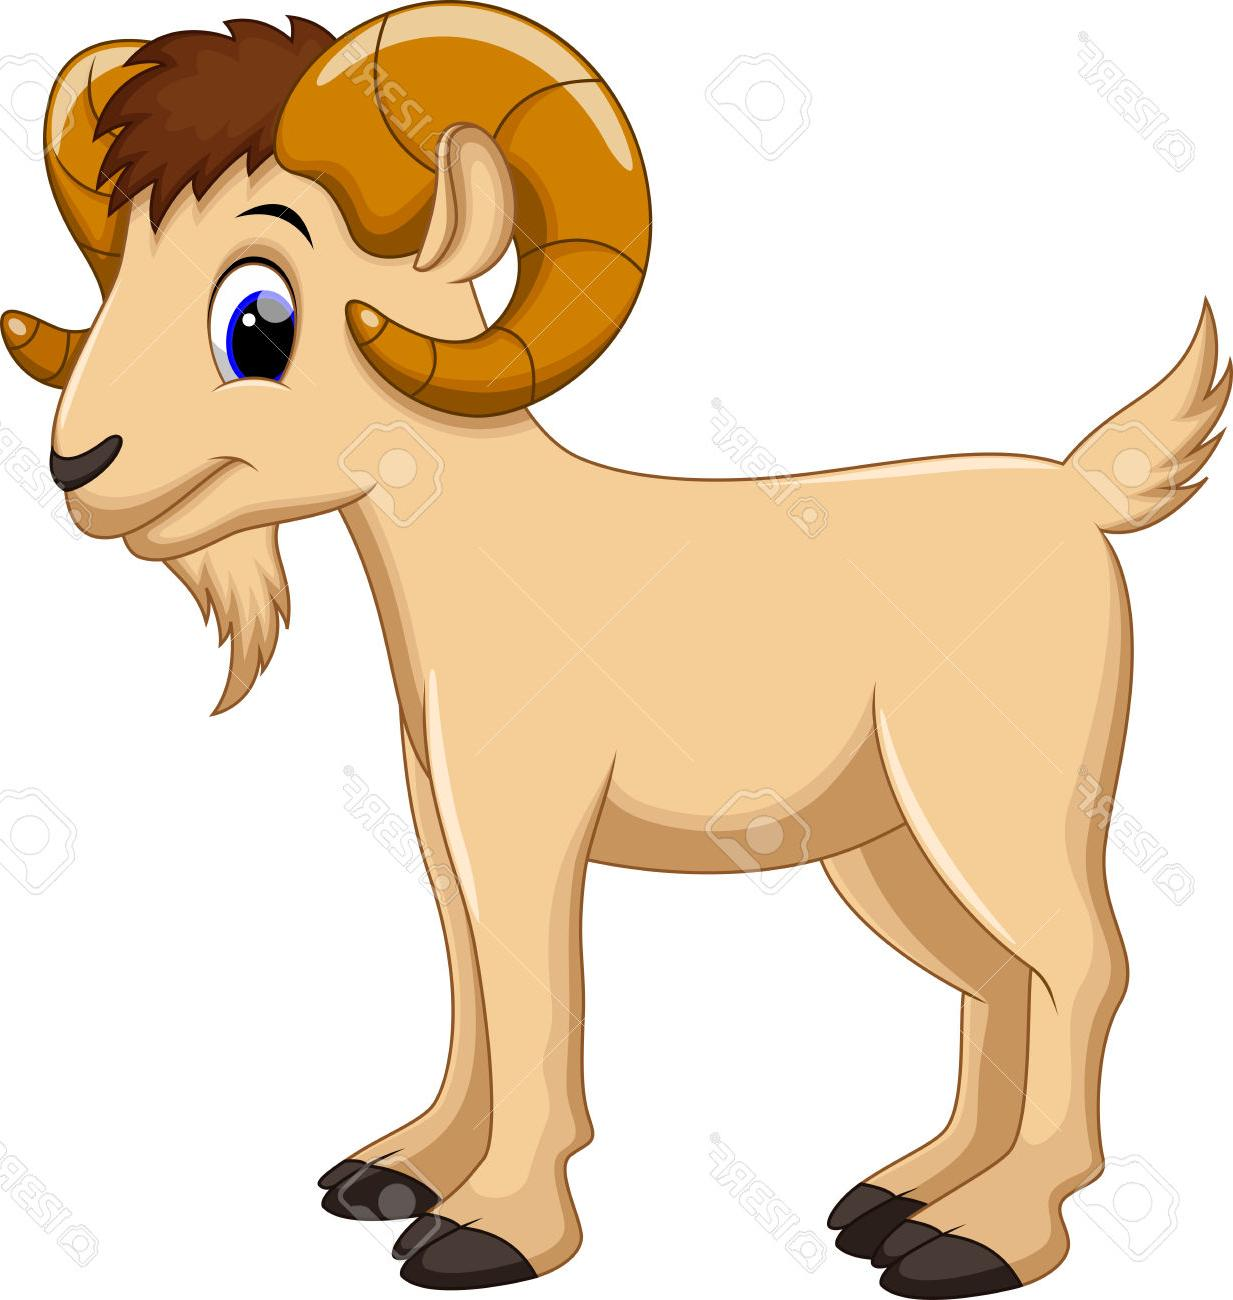 goat clipart 7 | Clipart Station for Kid Goat Clipart  75sfw